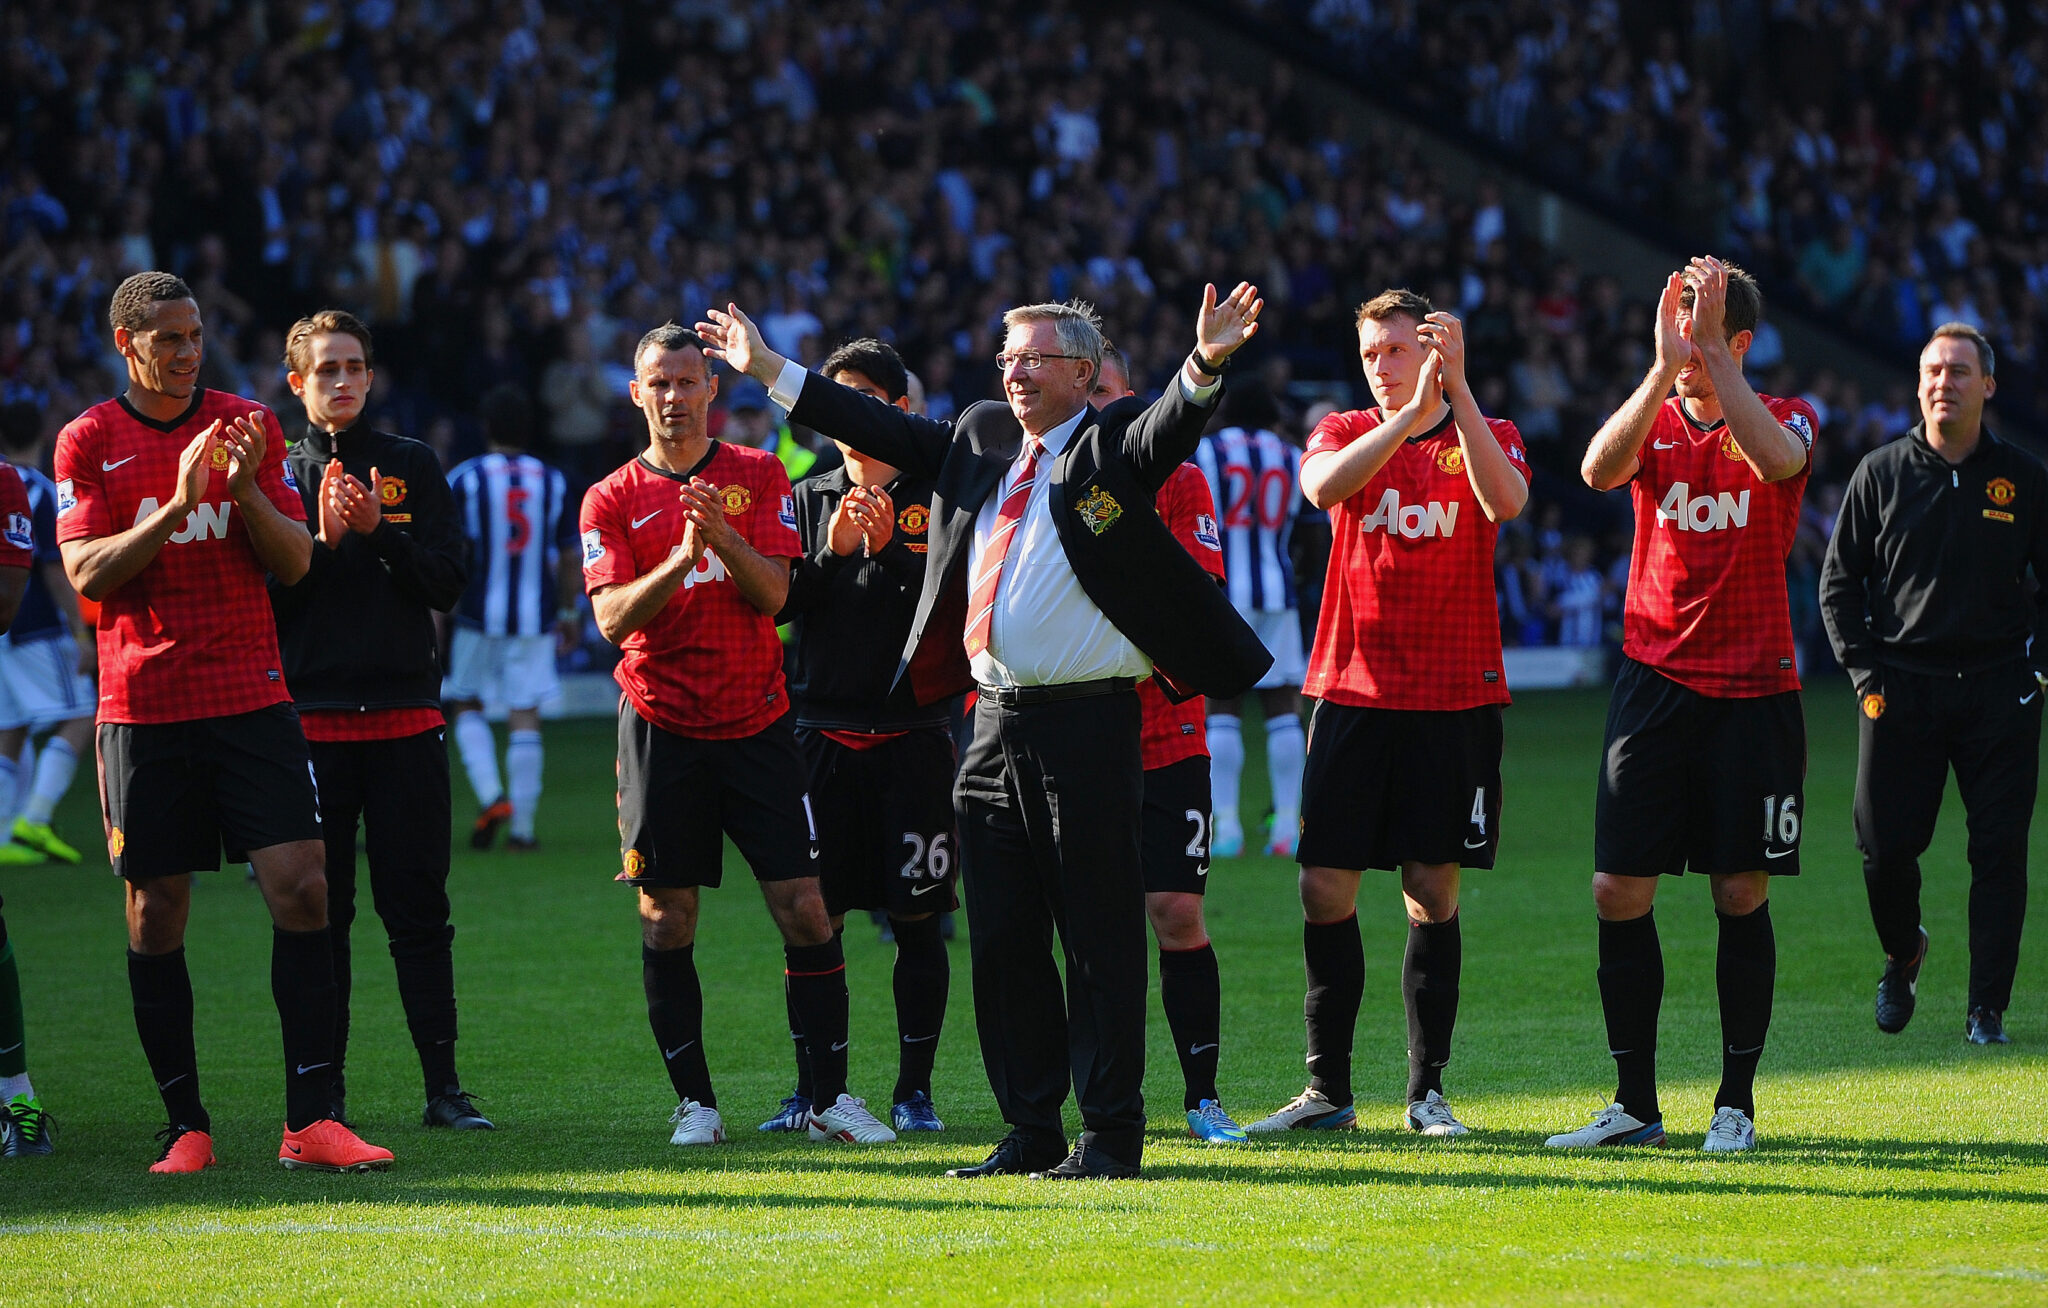 Addio Sir Alex Ferguson - Foto Michael Regan Getty Images OneFootball